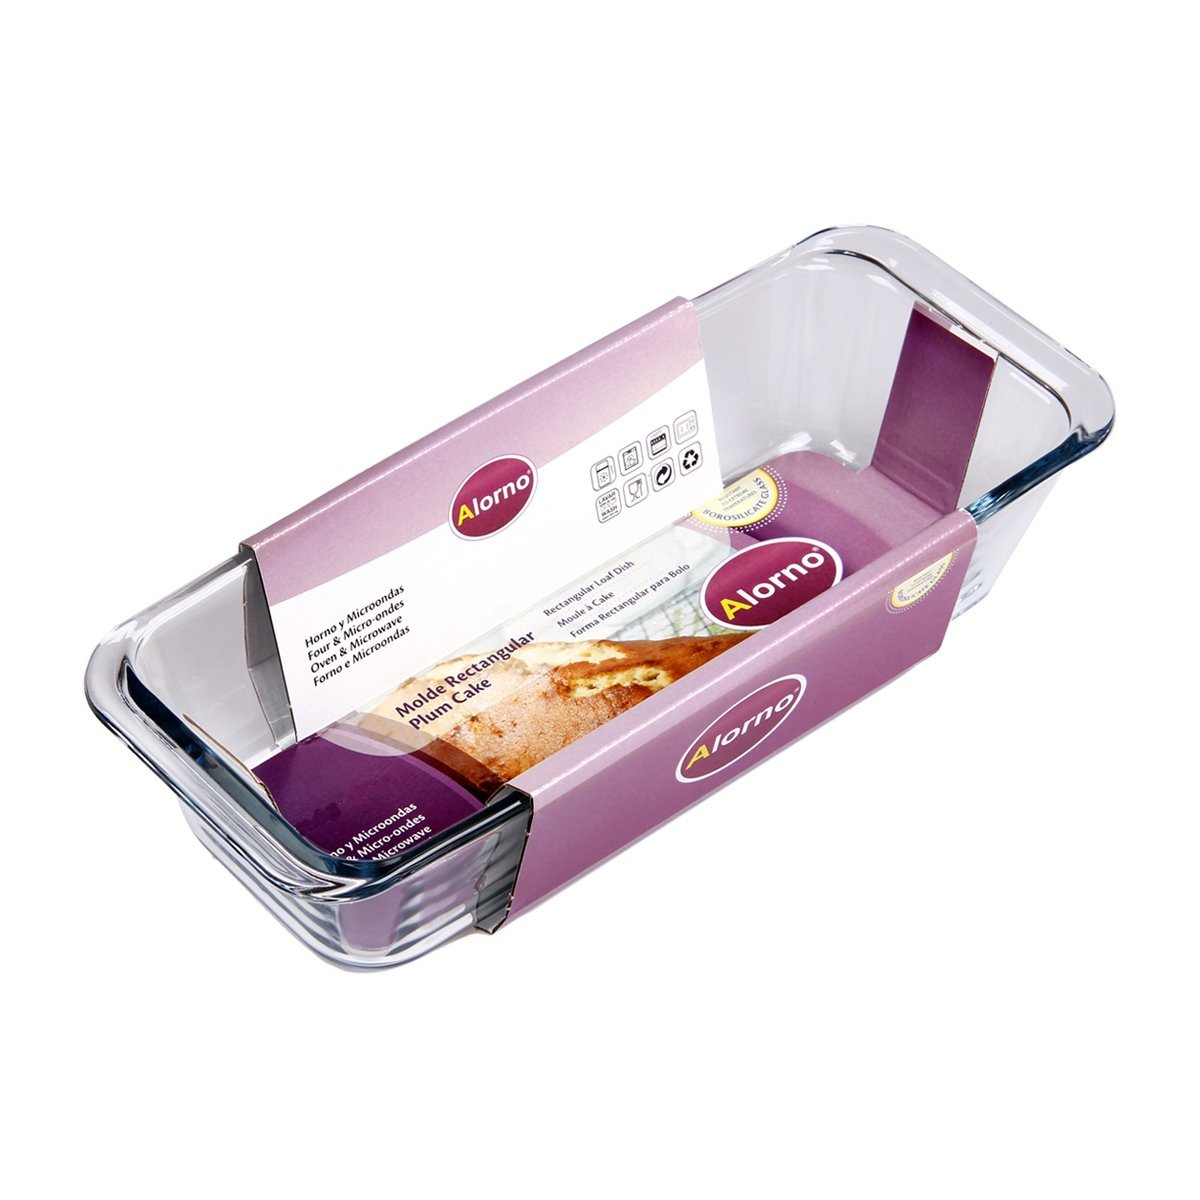 Get 44% off on Alorno Borosilicate Glass, Rectangular Loaf Plum Cake Dish, 1.3 Ltr